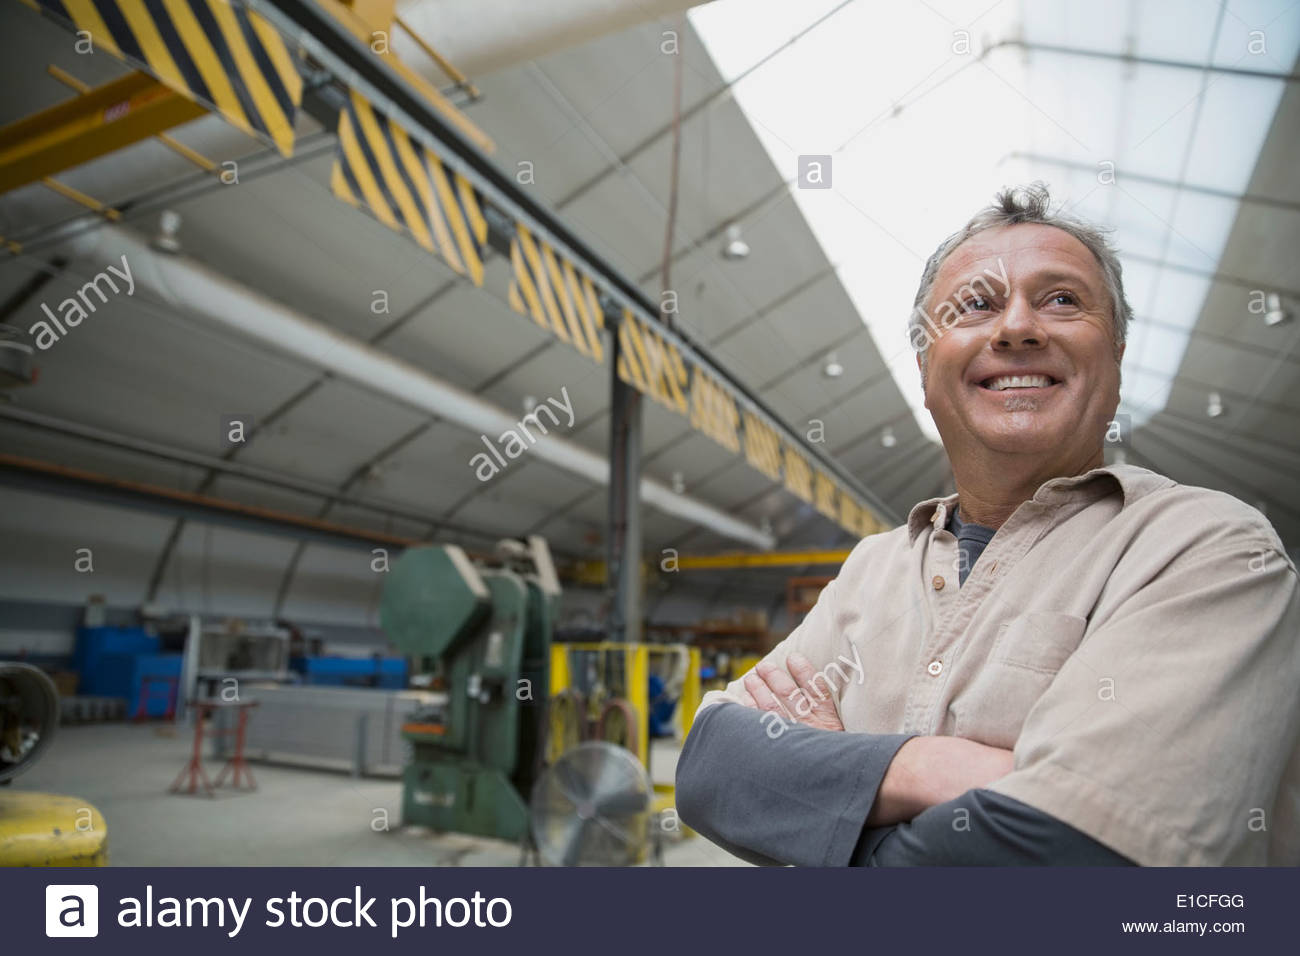 Working in manufacturing plant Photo Stock